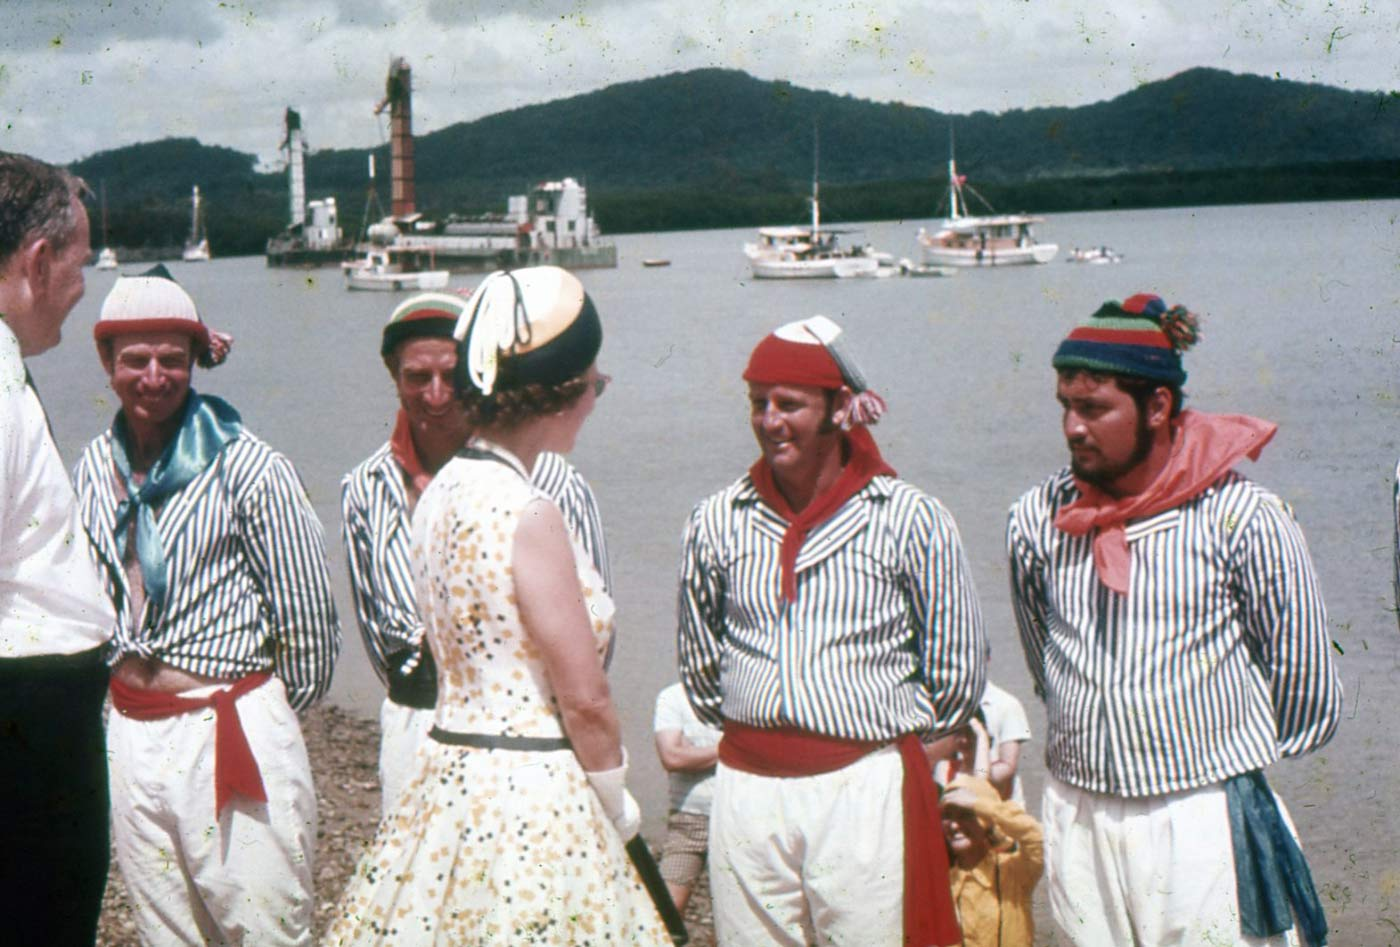 Colour photo of Queen Elizabeth II being greeted by town residents in period costume. - click to view larger image